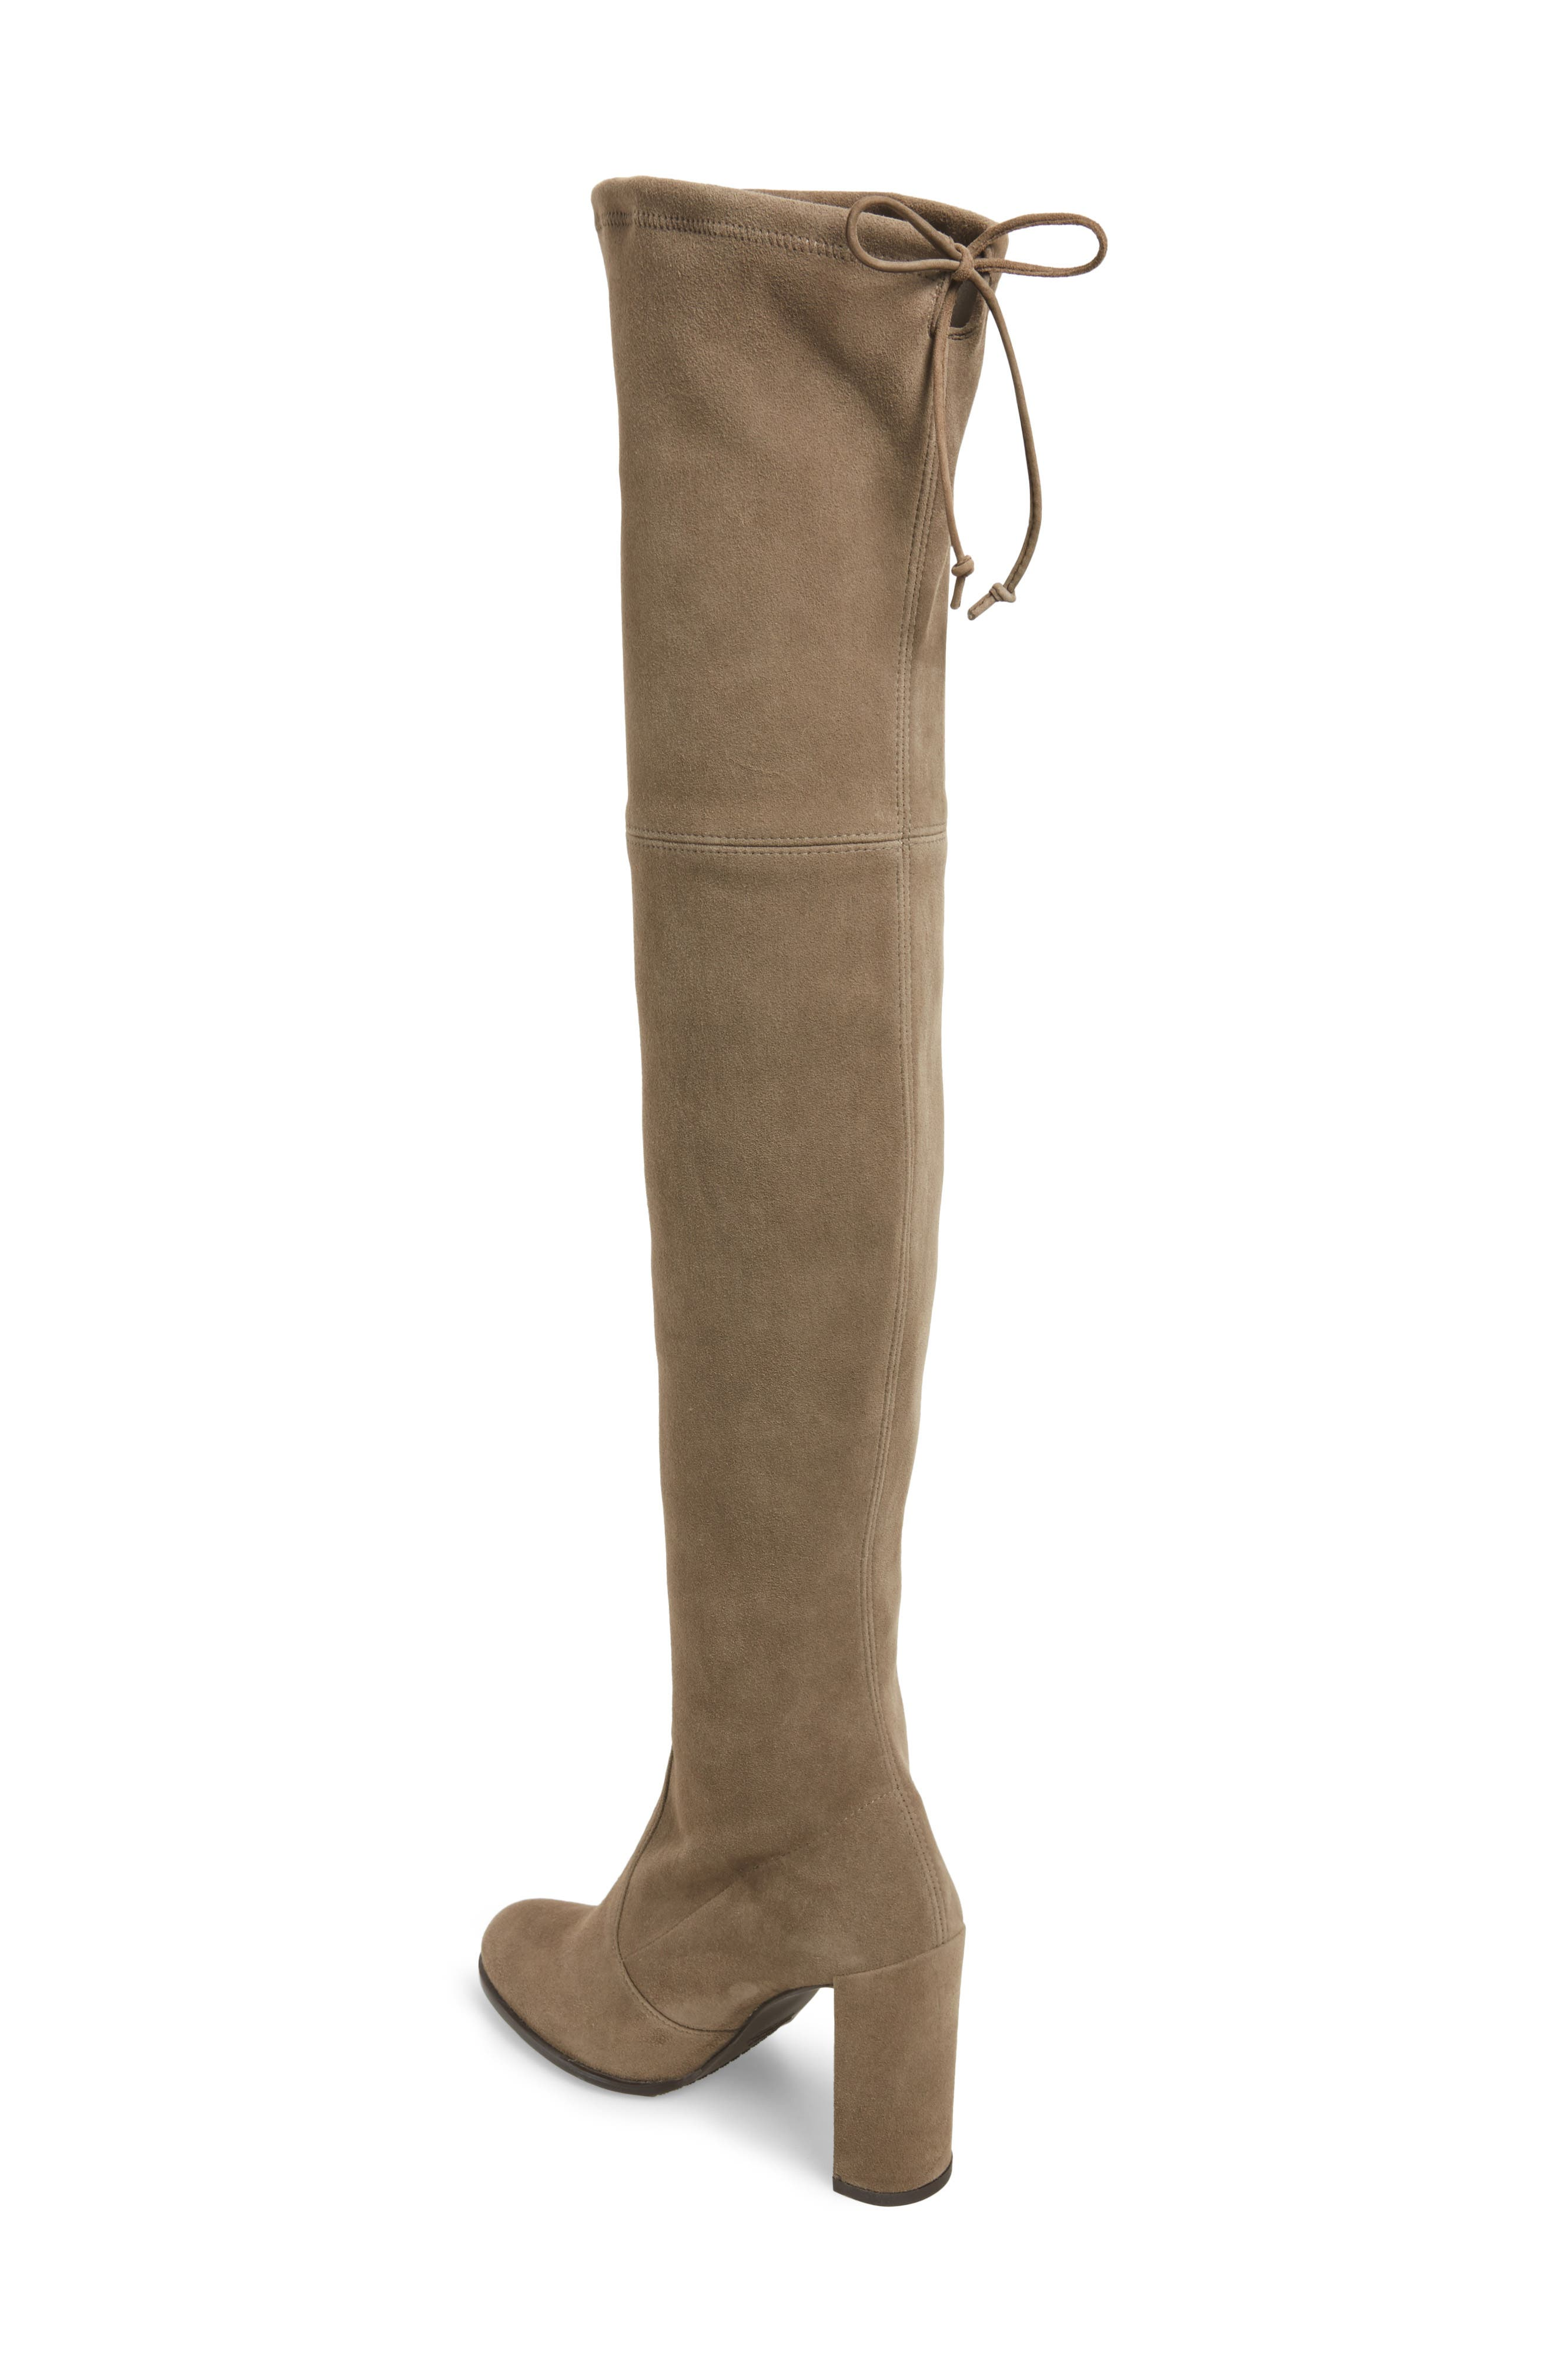 Hiline Over the Knee Boot,                             Alternate thumbnail 2, color,                             Praline Suede